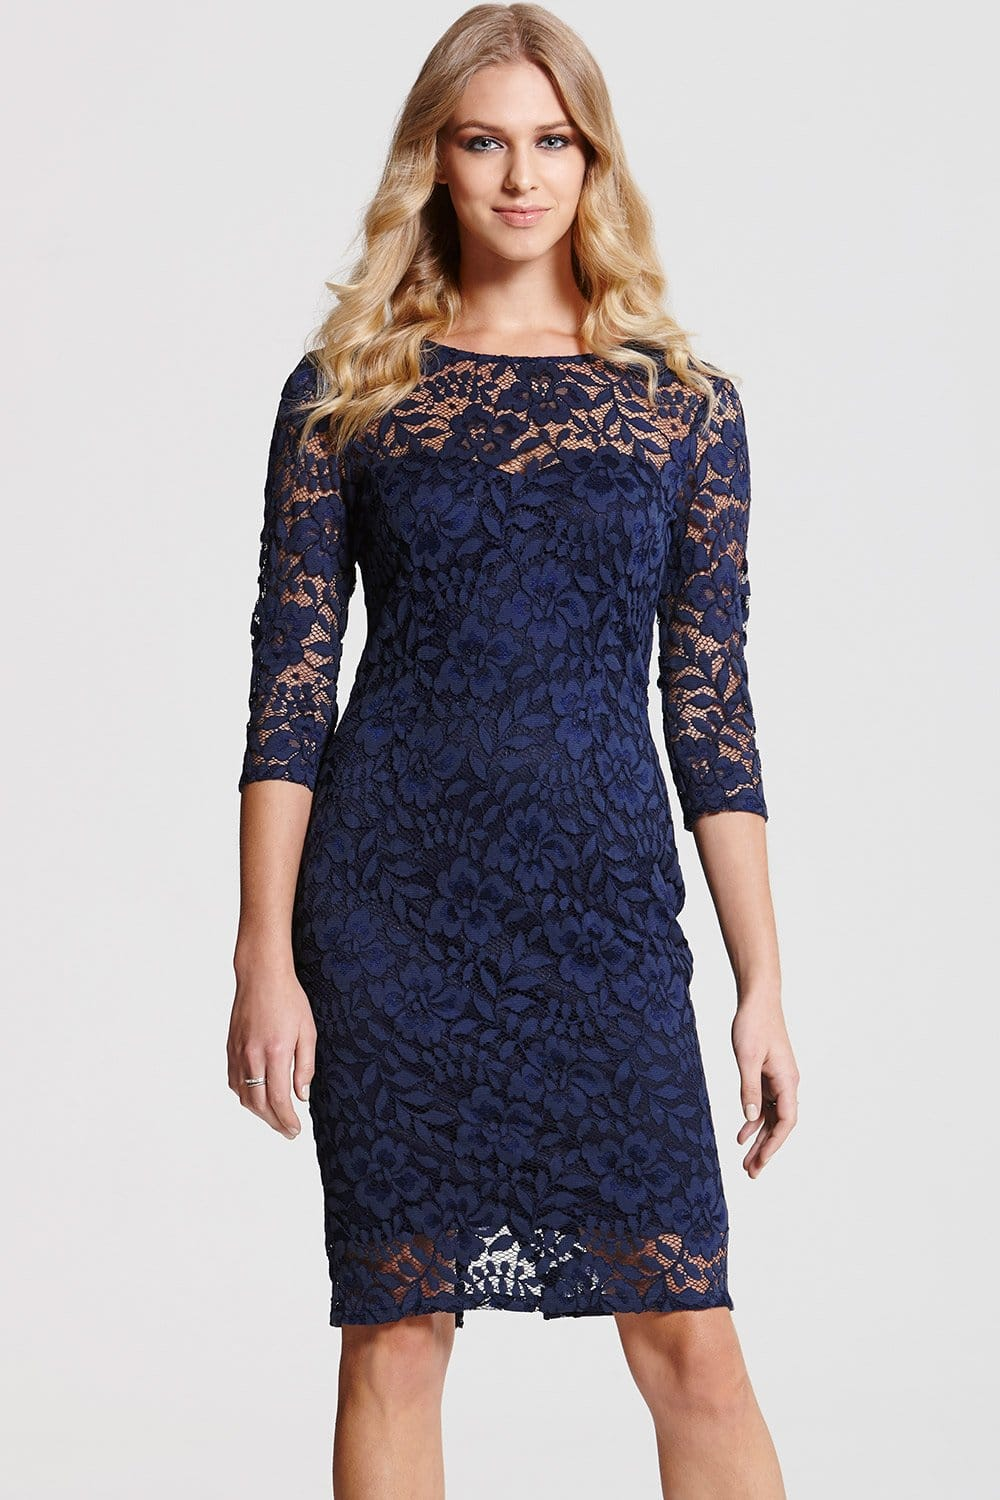 6bffcbe2b4c1 Paper Dolls Navy Lace 3 4 Sleeve Dress - Paper Dolls from Little Mistress UK